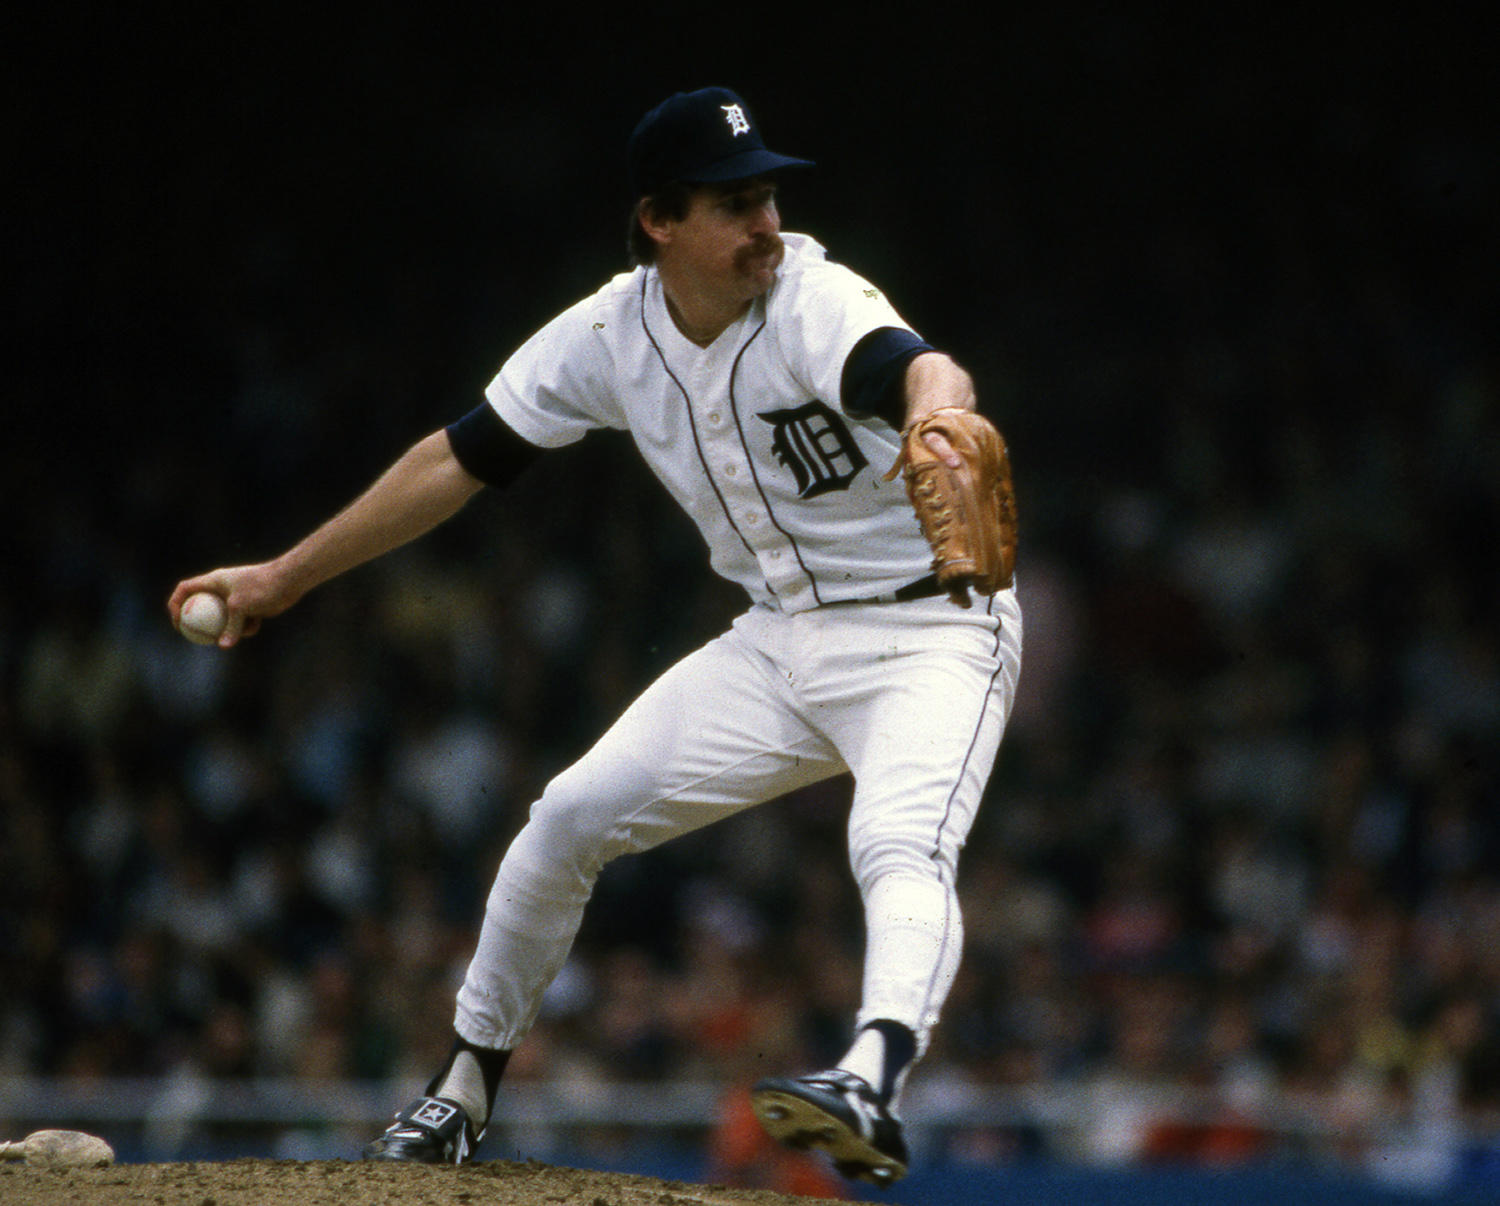 Jack Morris played for the Detroit Tigers from 1977-1990, followed by stints with the Twins (1991), Blue Jays (1992-93) and Indians (1994). (National Baseball Hall of Fame and Museum)